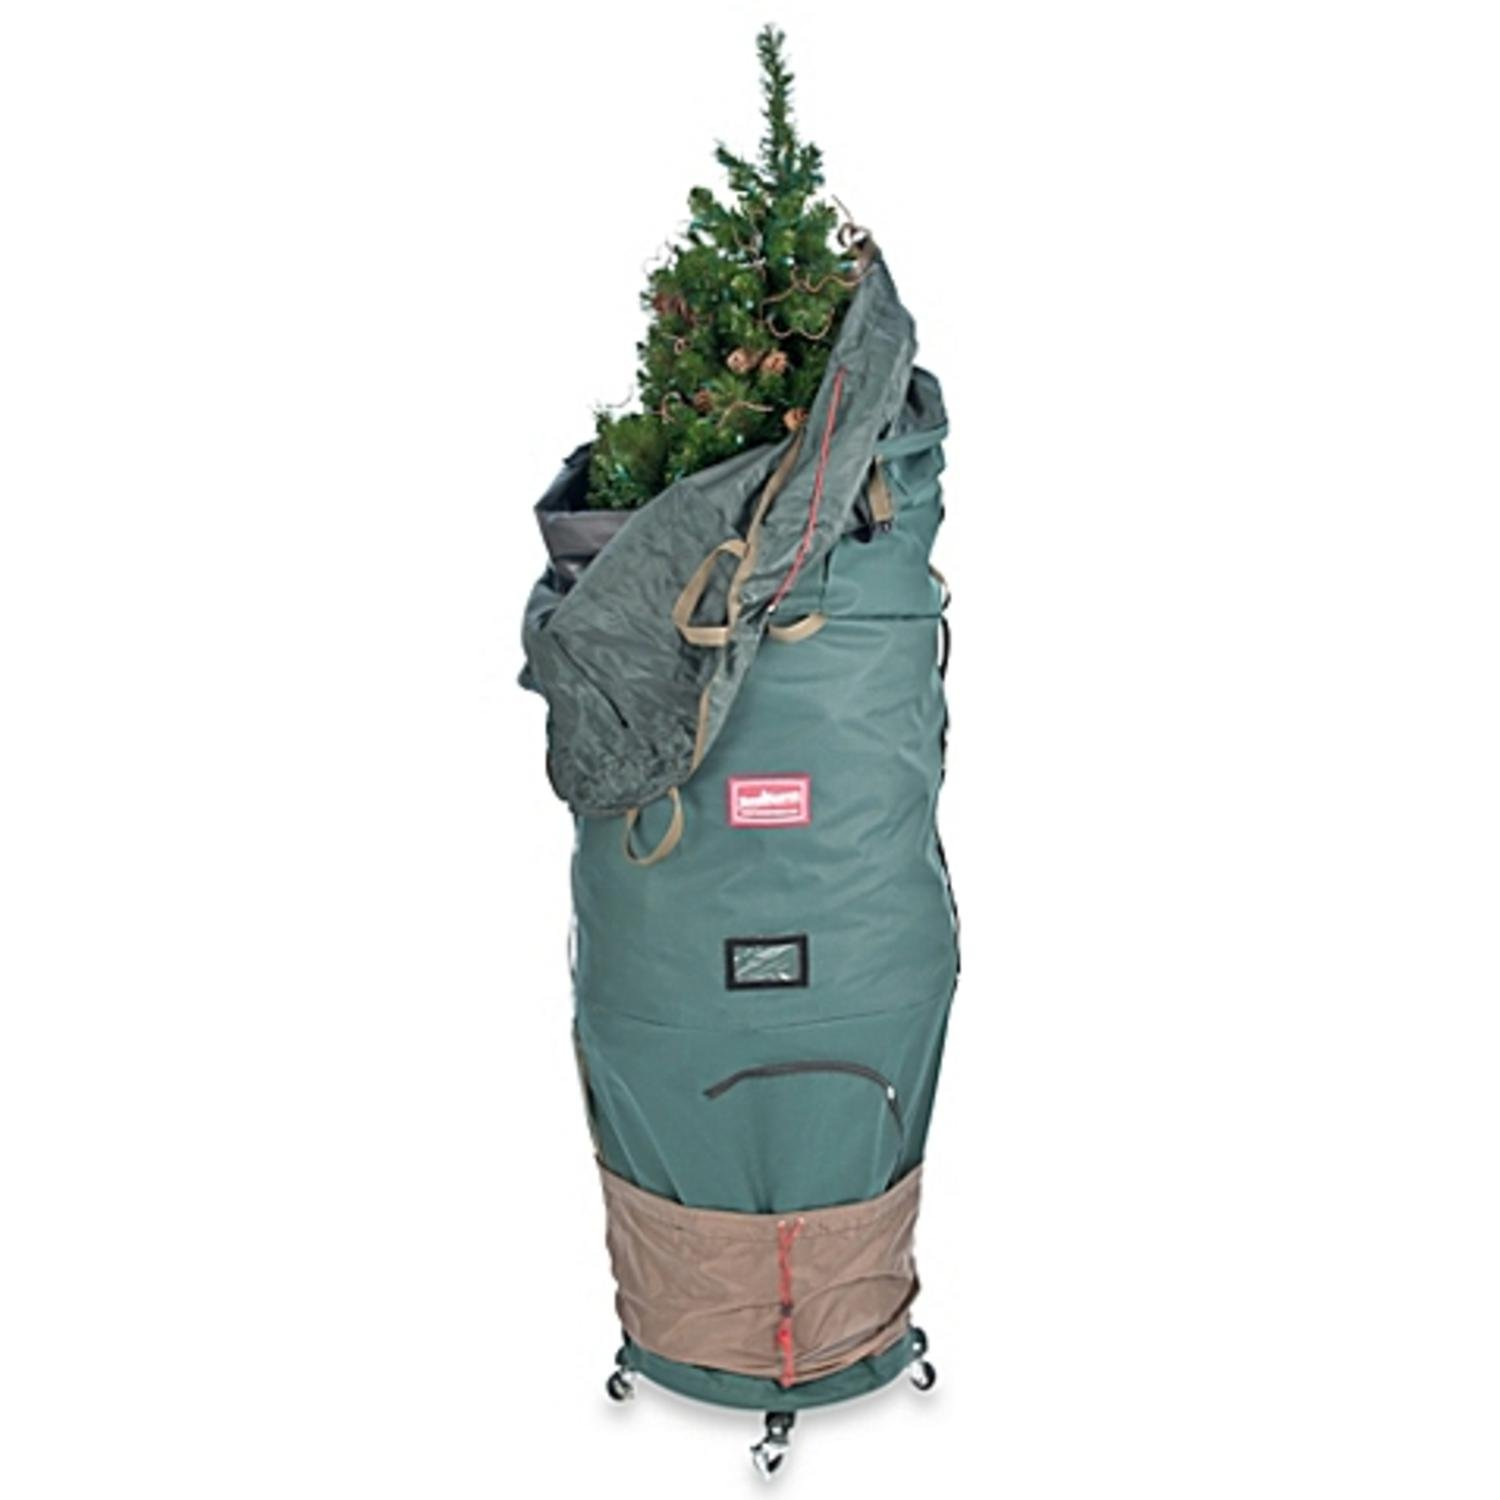 Large Adjustable Upright Christmas Tree Protective Storage Bag W/ 2 Way Rolling- Hold 7' Trees